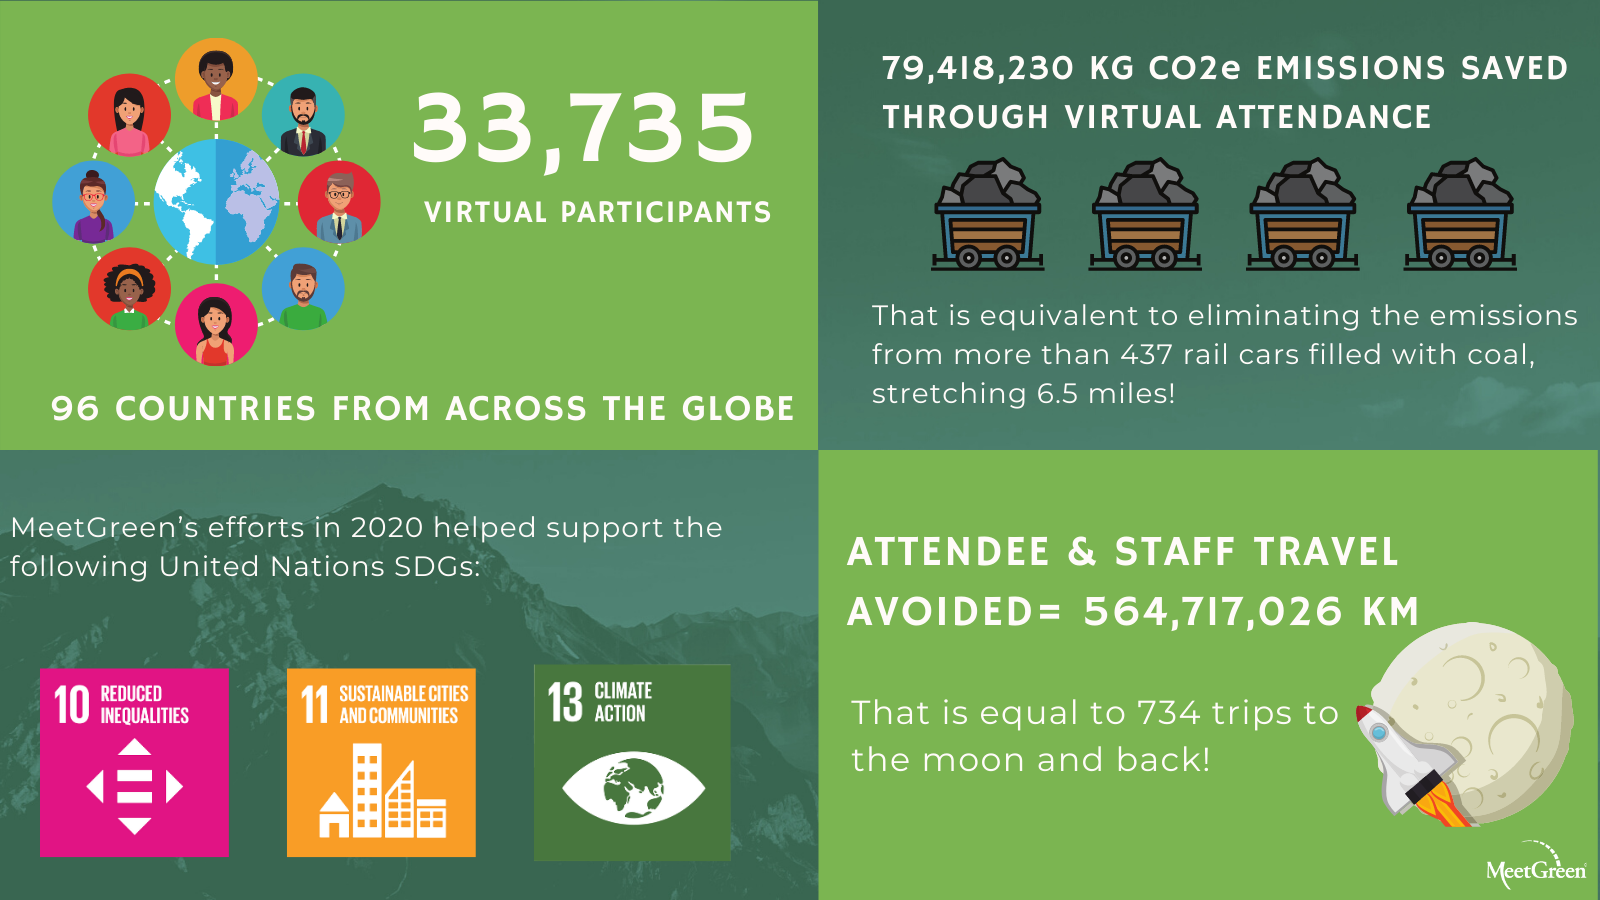 In 2020 alone, when it was impossible to safely meet in person, we measured 79,418,230 kg of CO2e saved through virtual attendance. That is equivalent to eliminating the emissions from more that 437 rail cars filled with coal, stretching 6.5 miles.